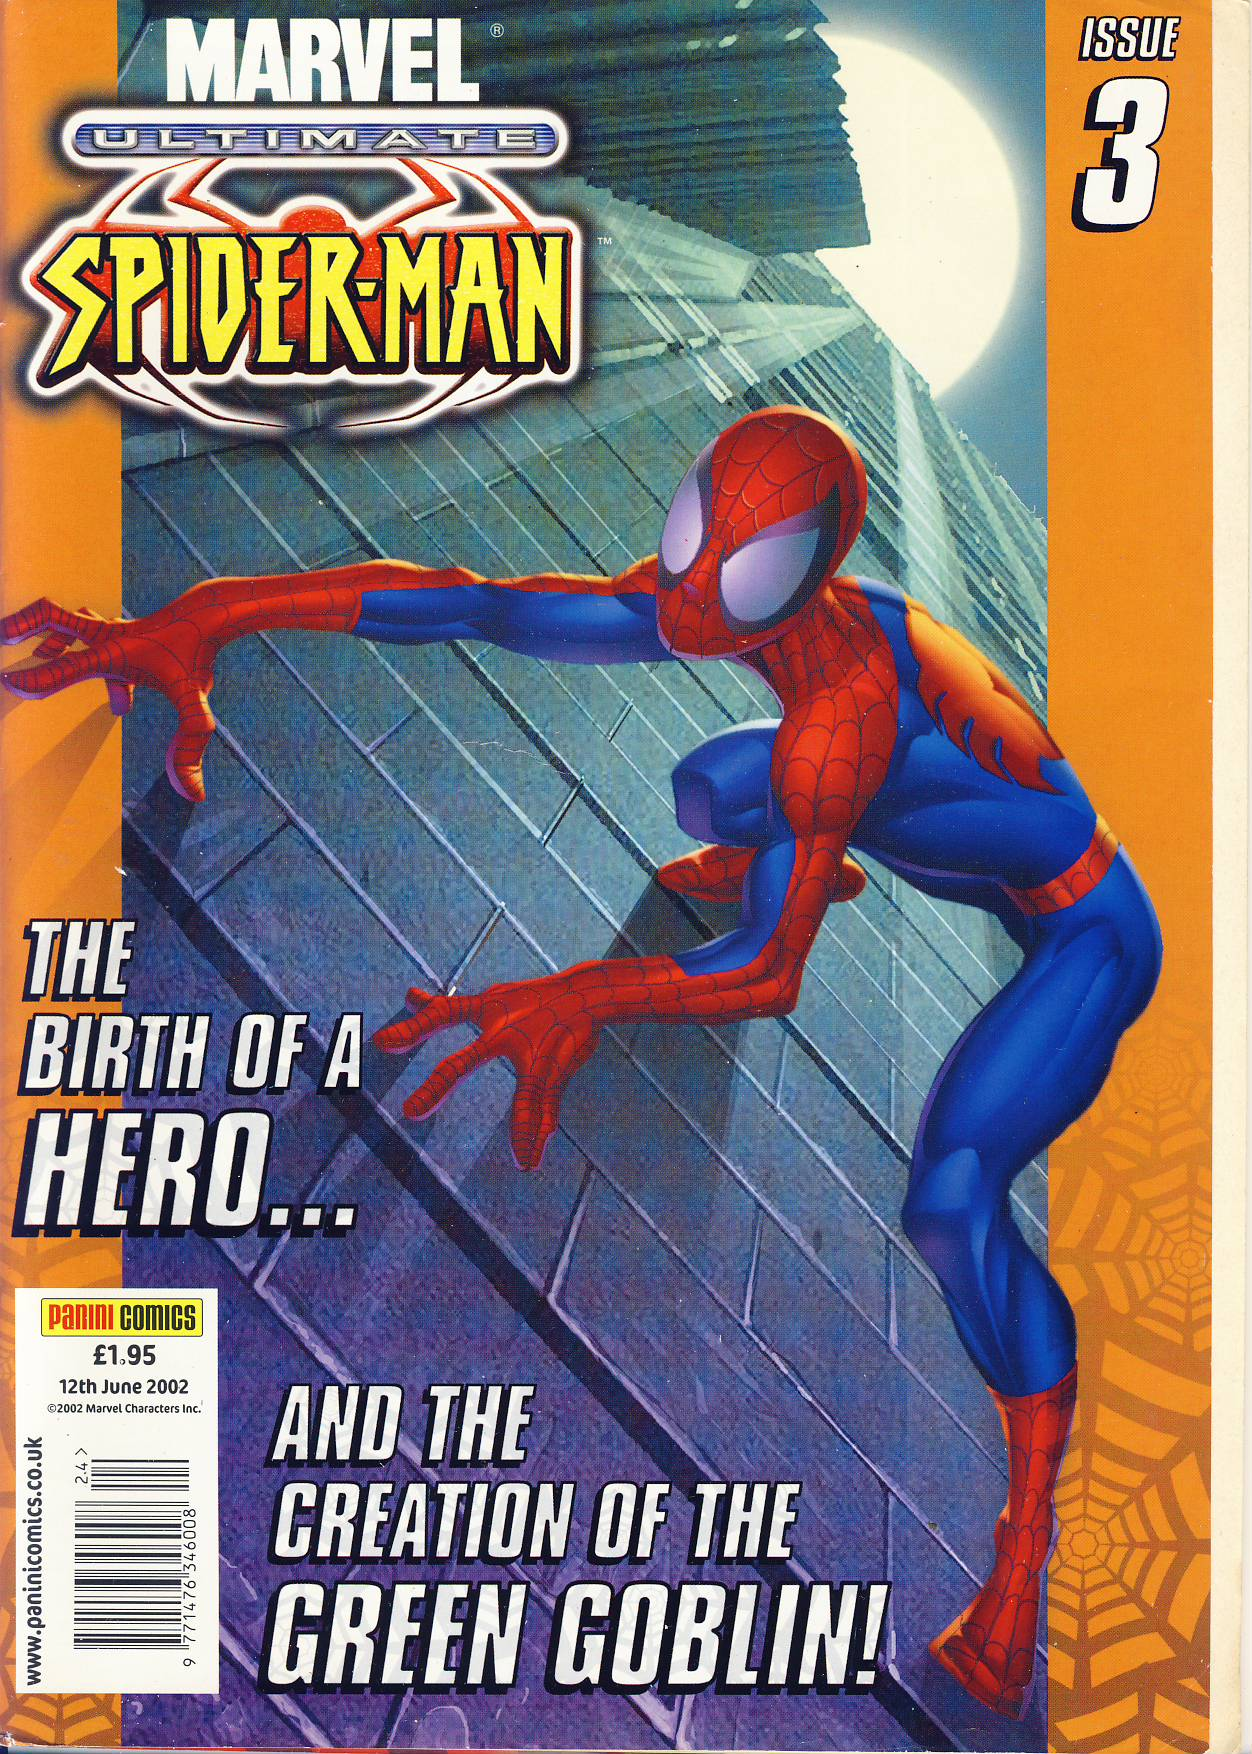 Marvel Ultimate Spider-Man Issue 3 2002 graphic novel comic ref101743 The Birth of a HERO ... And the creation of the GREEN GOBLIN! - a pre-owned item in read condition.